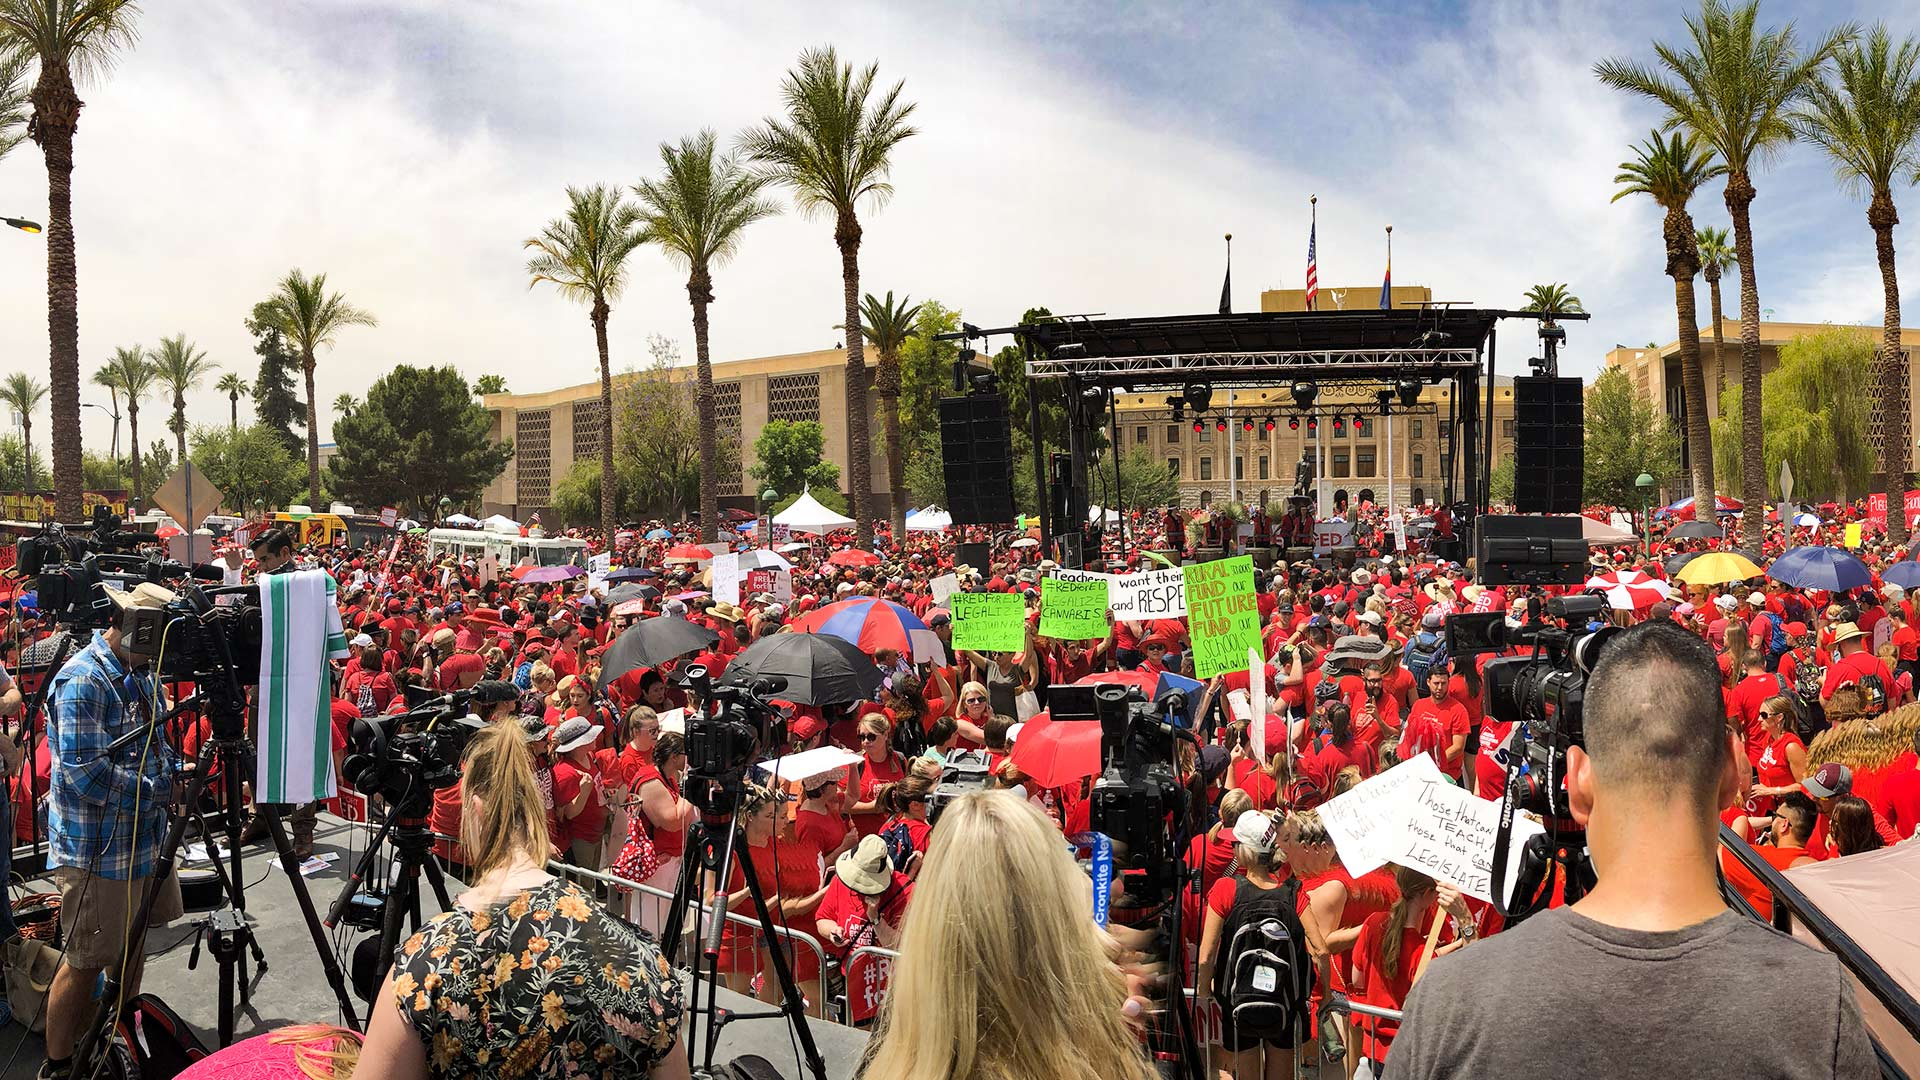 #RedForEd protesters gather in Phoenix, April 26, 2018.